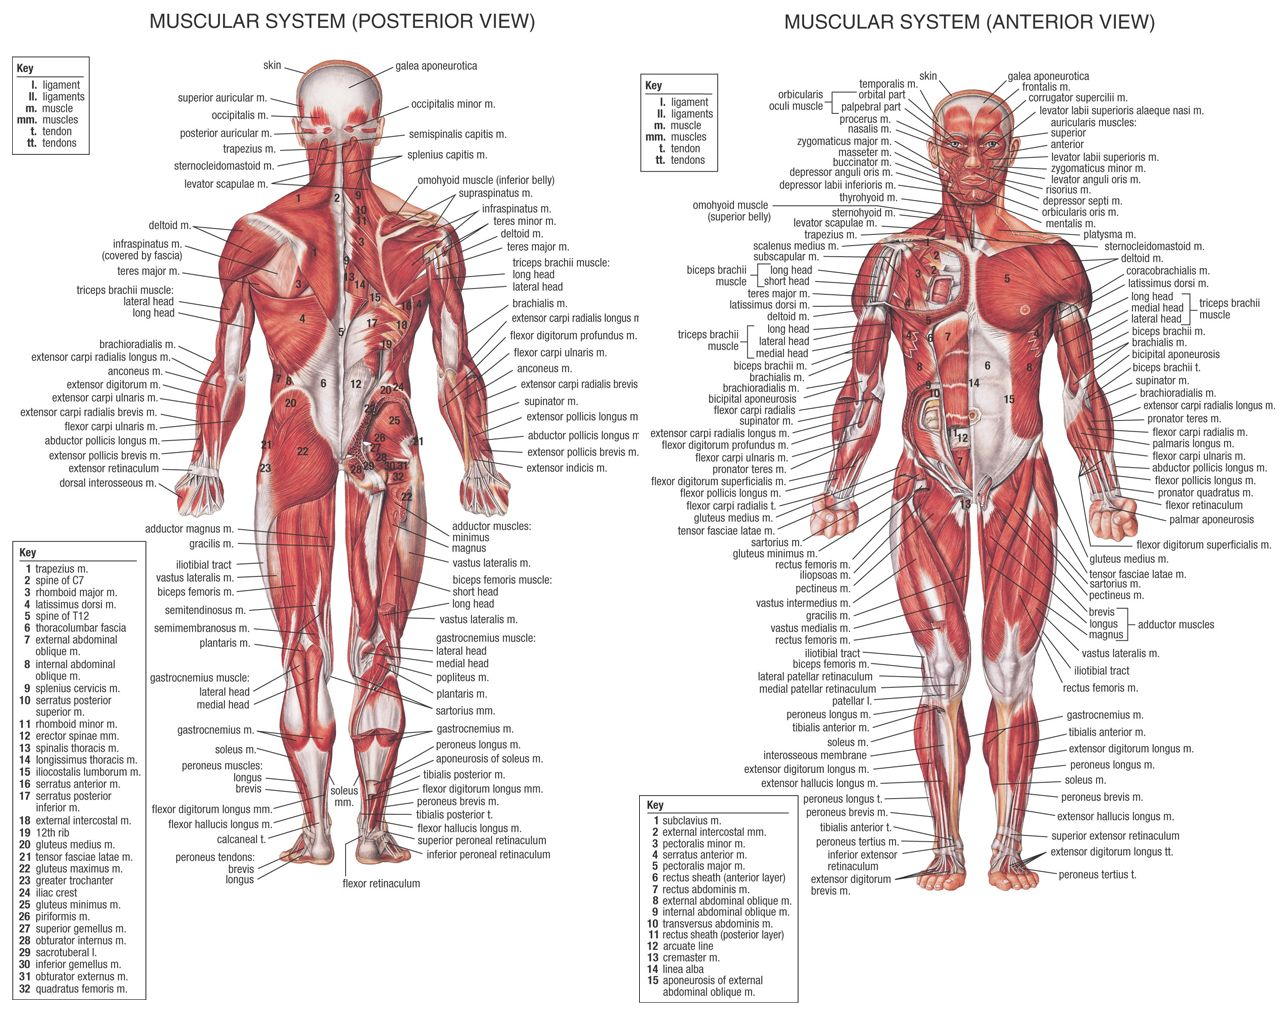 diagram of the muscles of the human body – citybeauty, Muscles